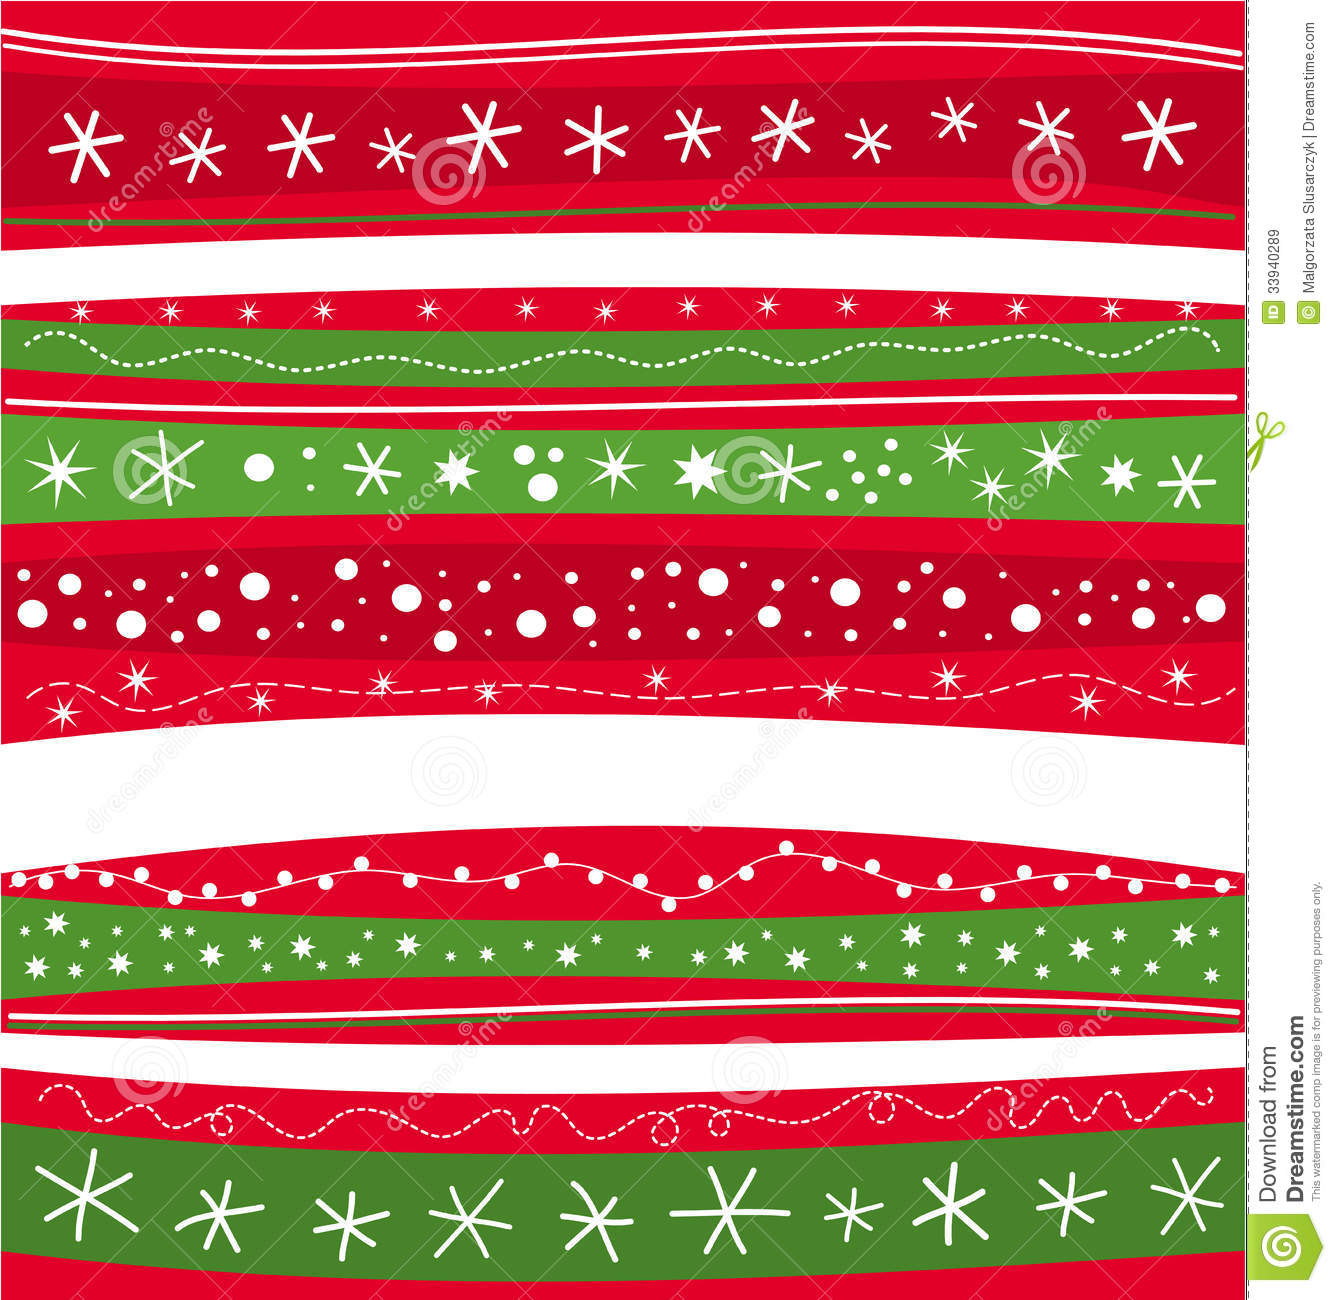 Christmas Green And Red.Christmas Wallpaper Stock Vector Illustration Of Decoration